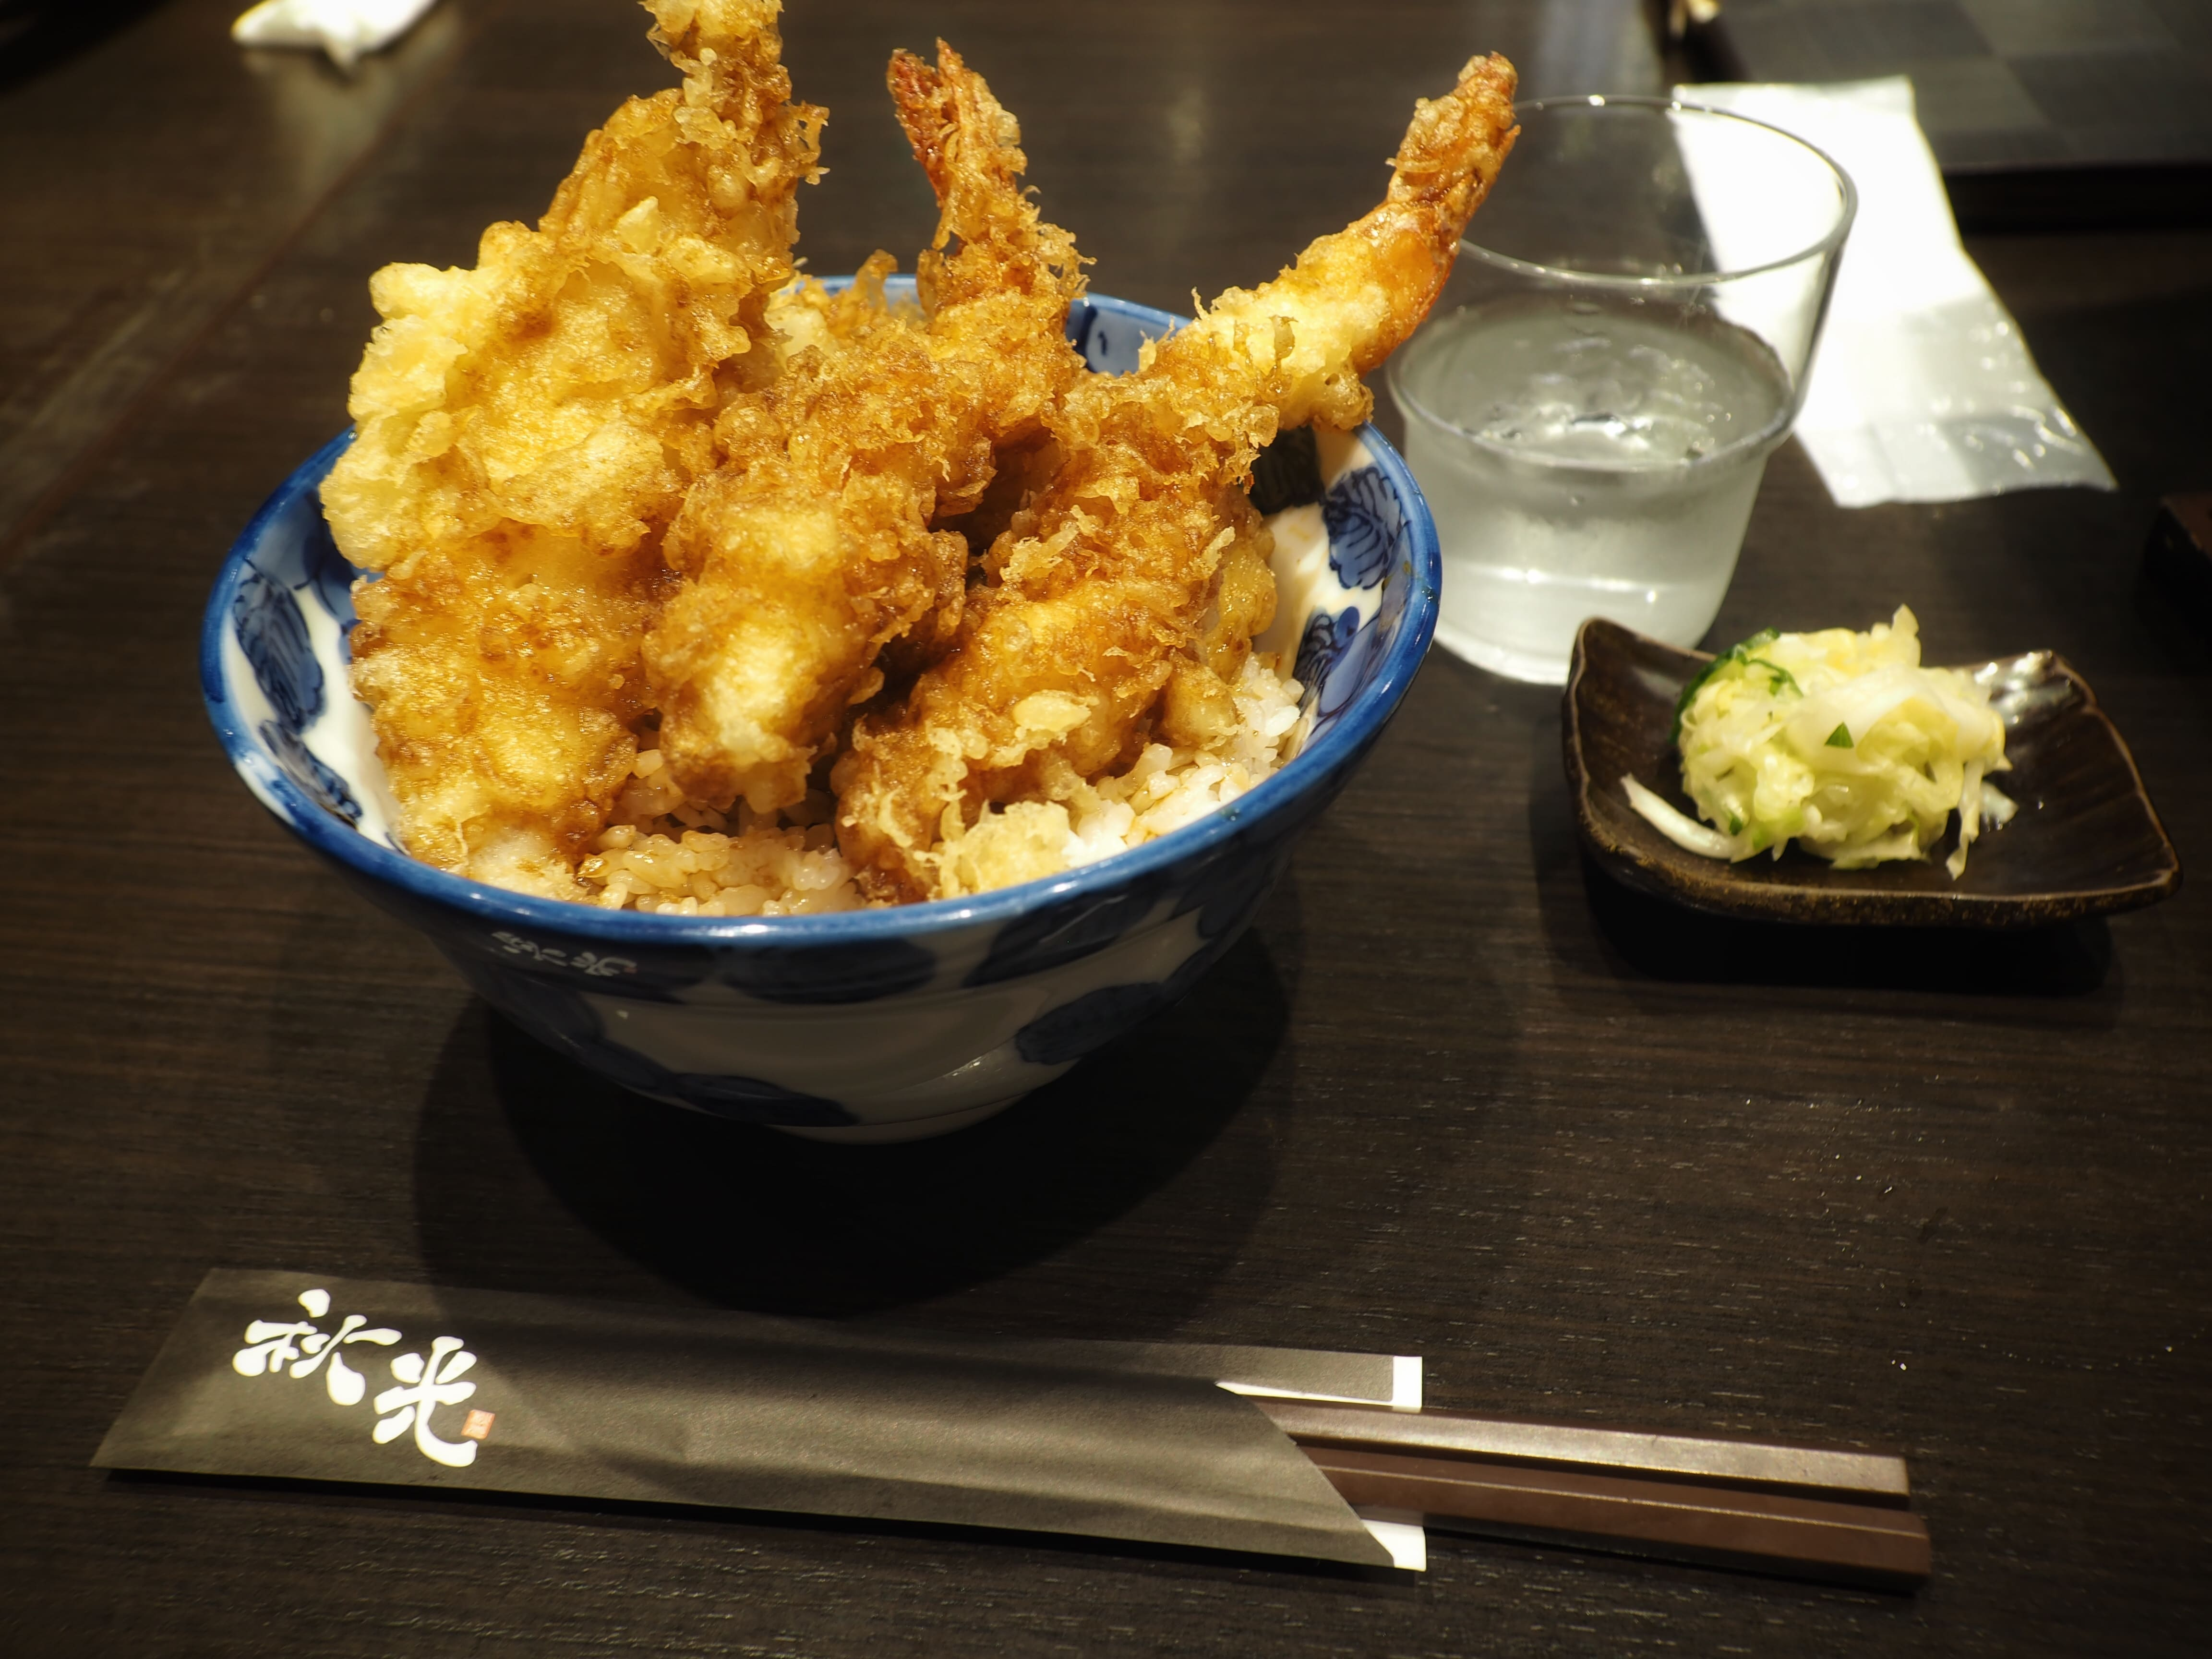 Tendon at Asakusa